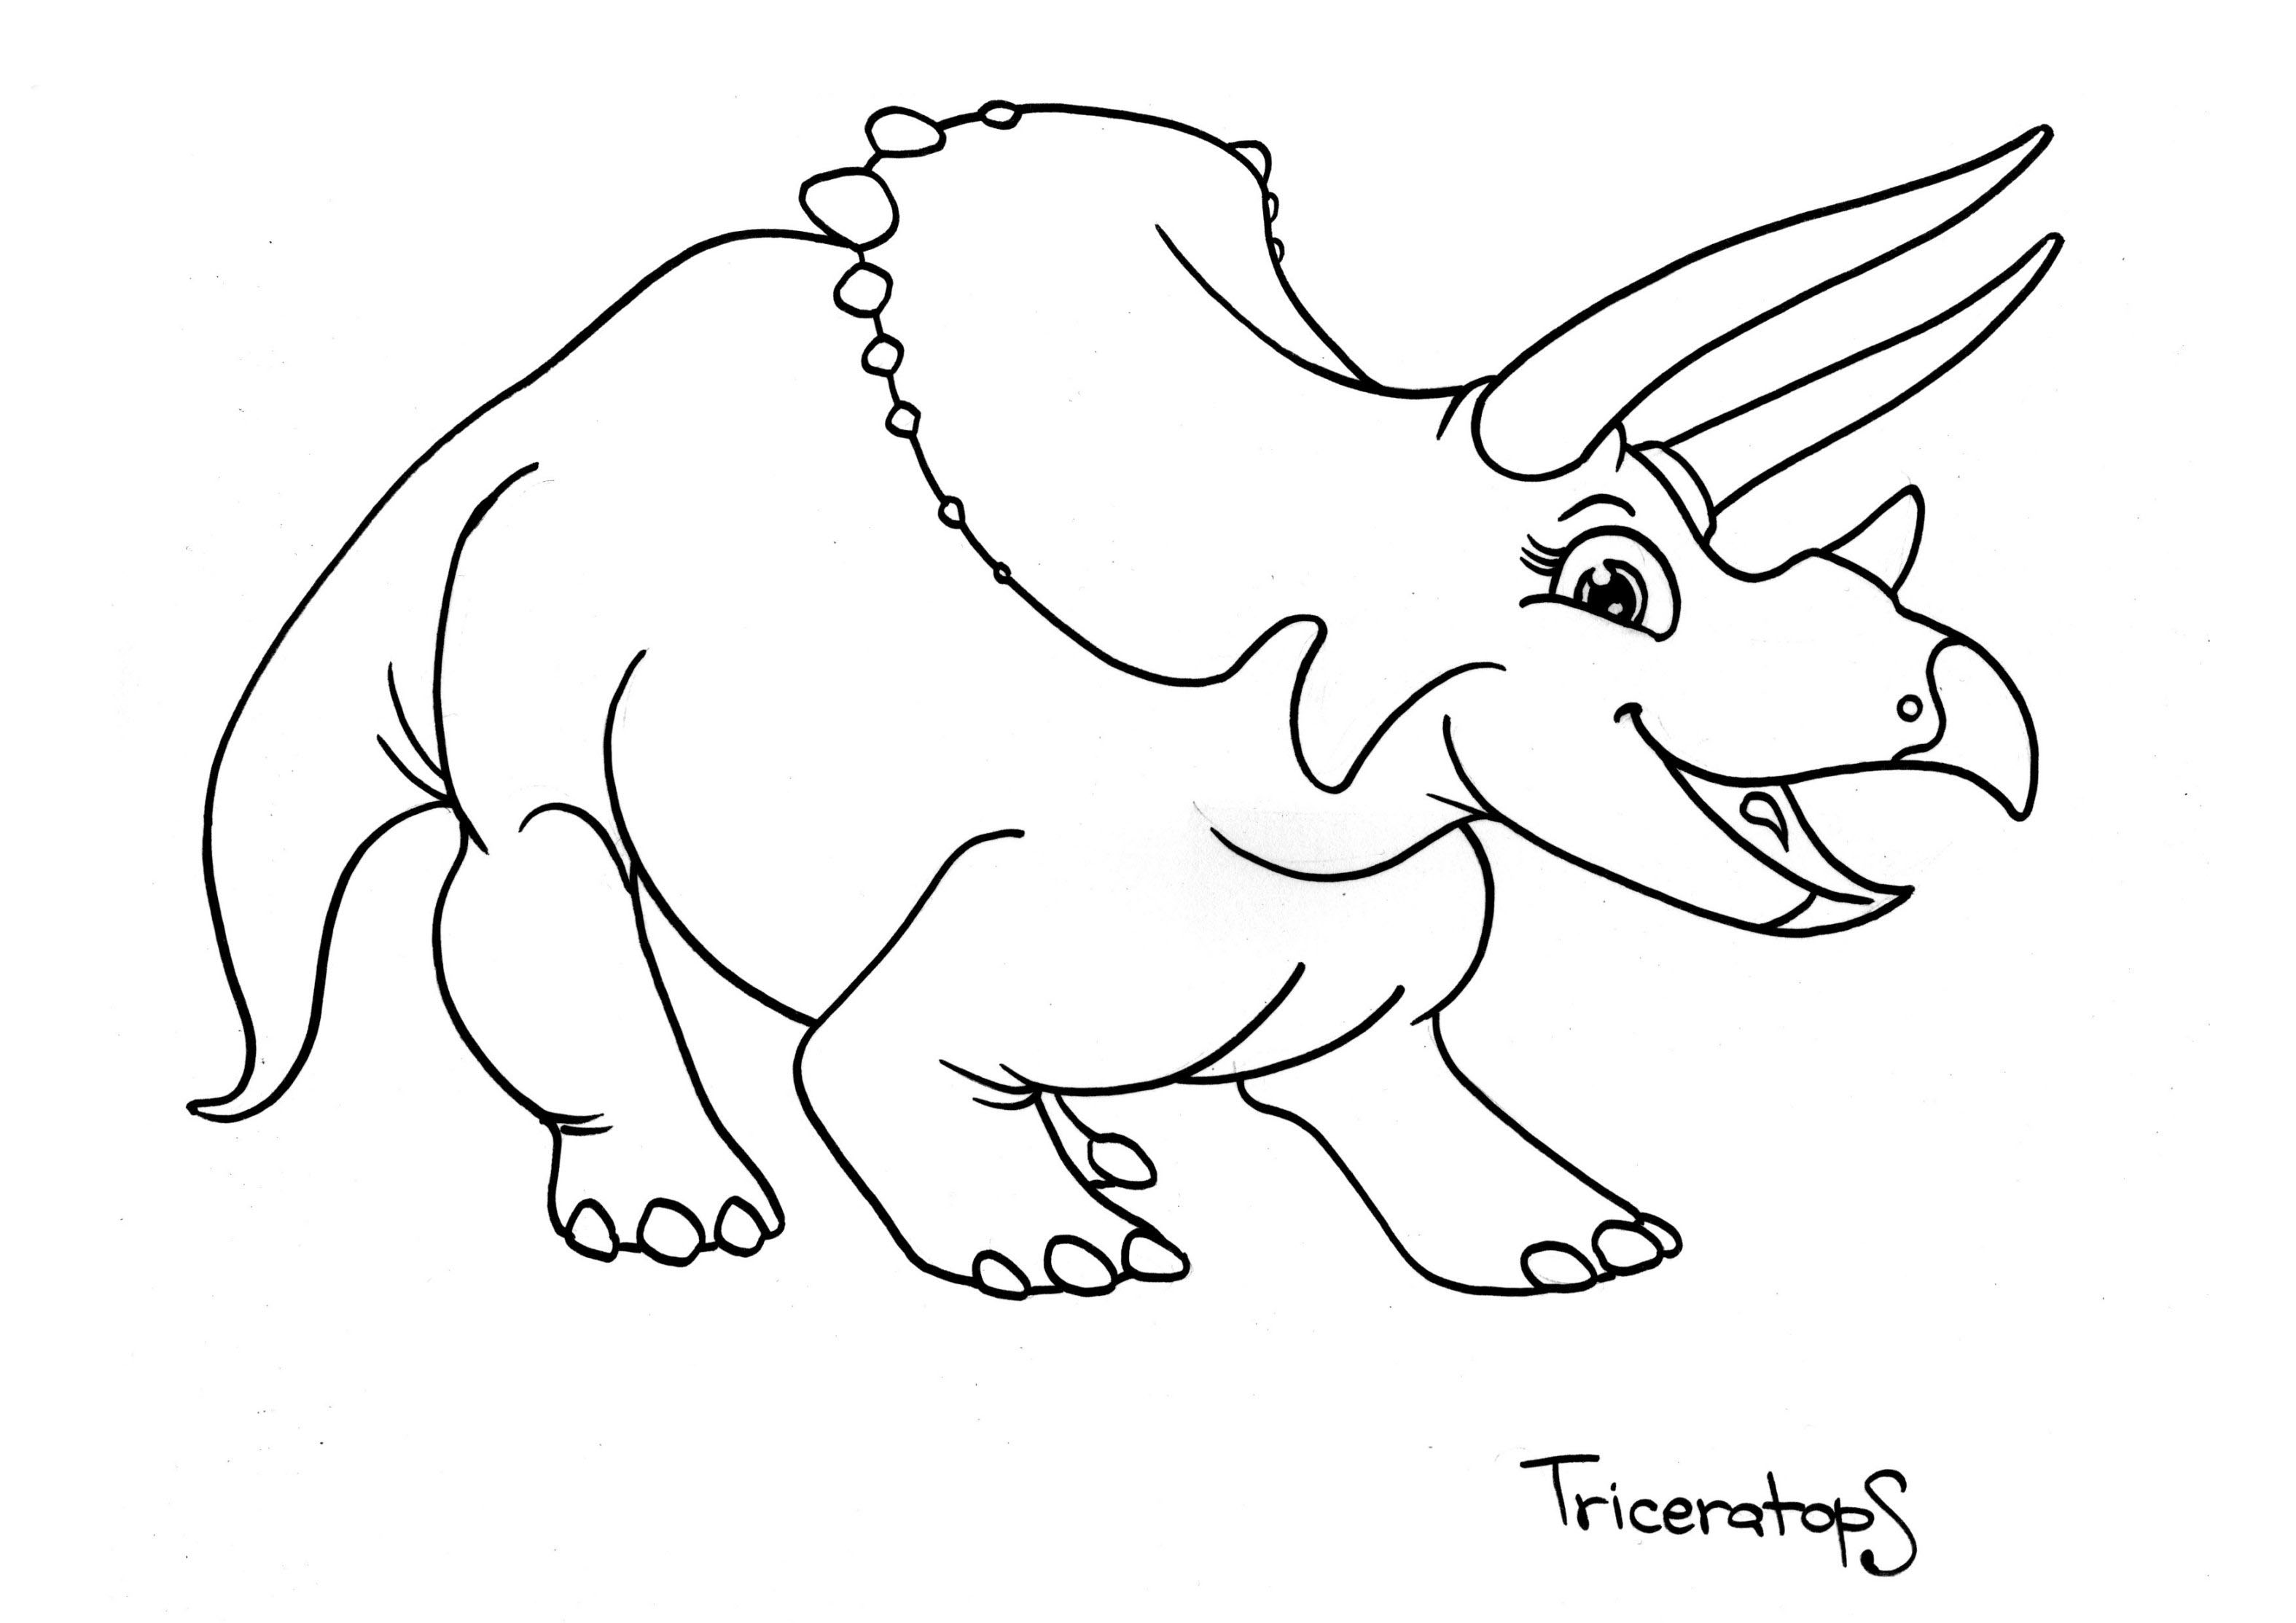 dinosaurs printable coloring pages coloring pages images dinosaurs pictures and facts page printable pages dinosaurs coloring